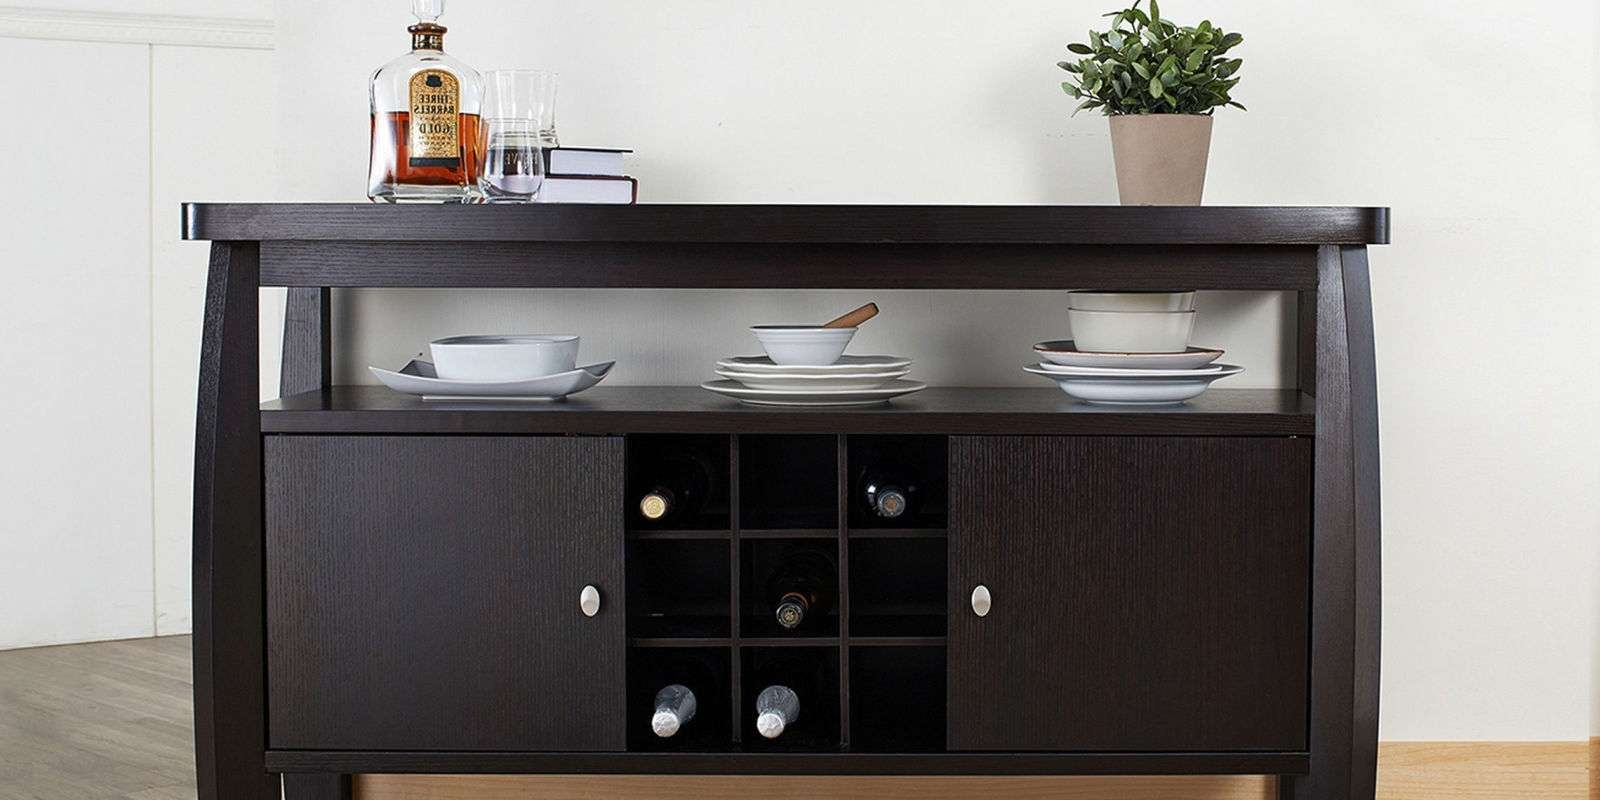 11 Best Sideboards And Buffets In 2018 – Reviews Of Sideboards Within Sideboards And Tables (Gallery 4 of 20)